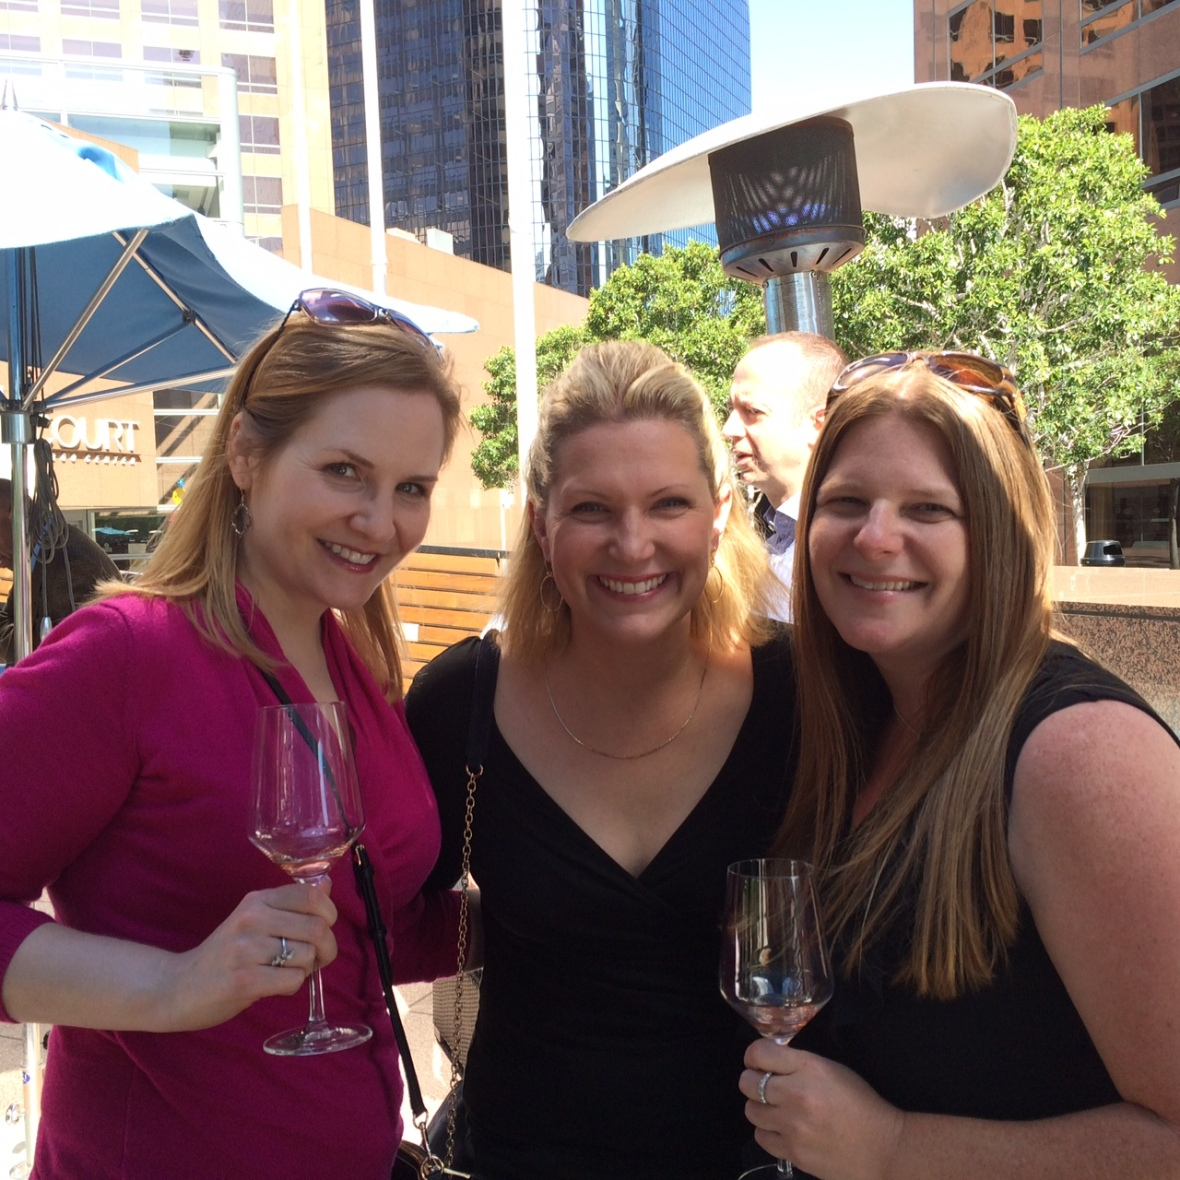 Gretchen, my new friend Tonia and I enjoying some delicious wine